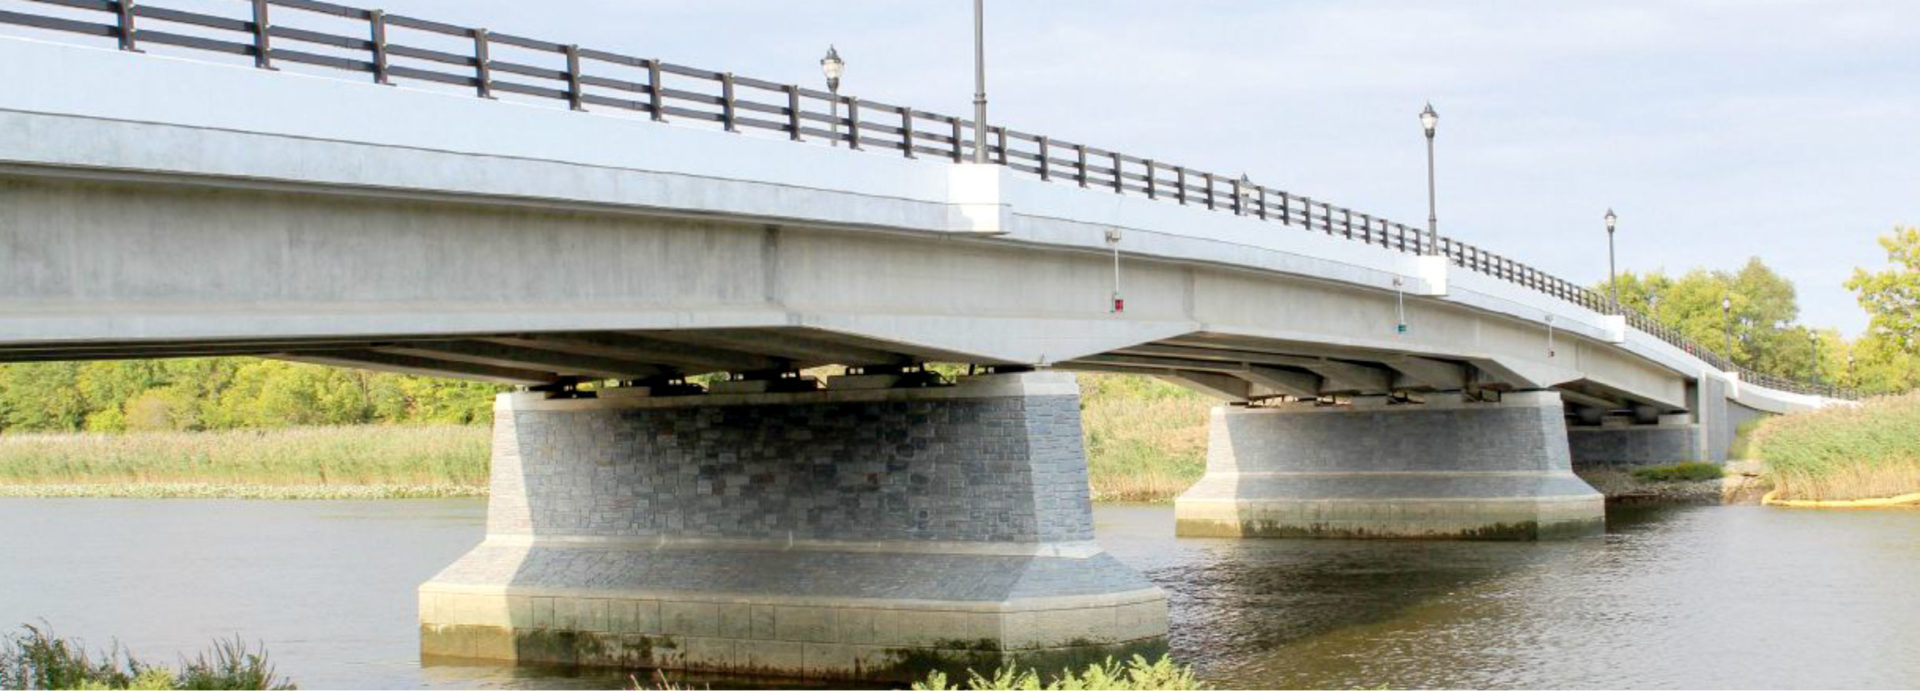 View of the completed bridge looking east.